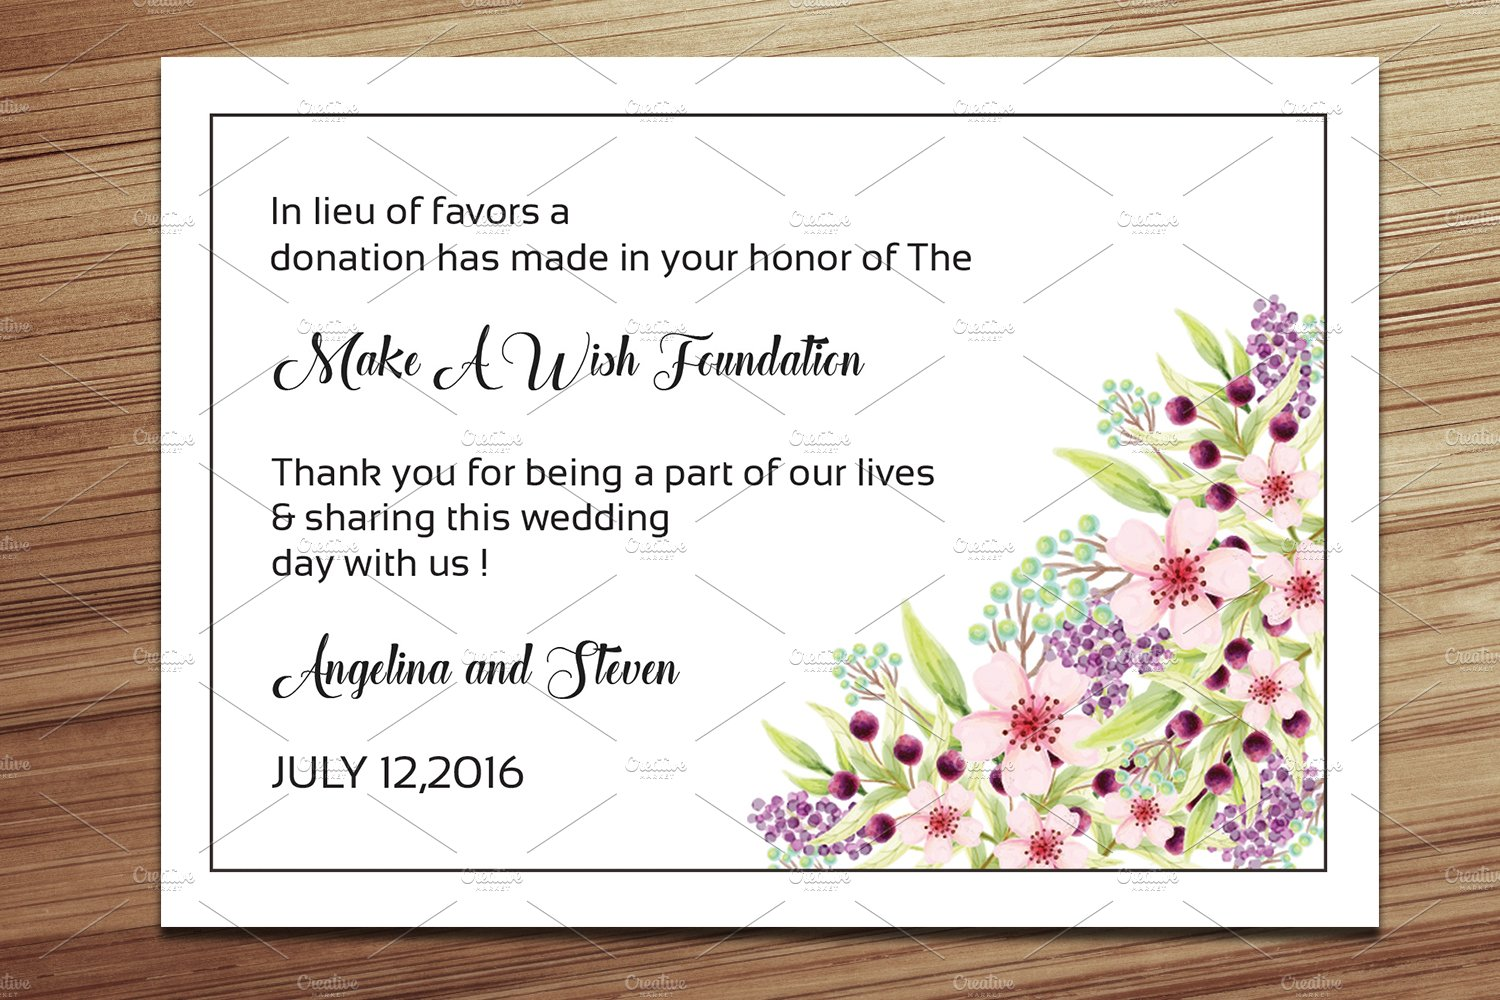 Wedding Favor Donation Card Template ~ Card Templates ~ Creative Market